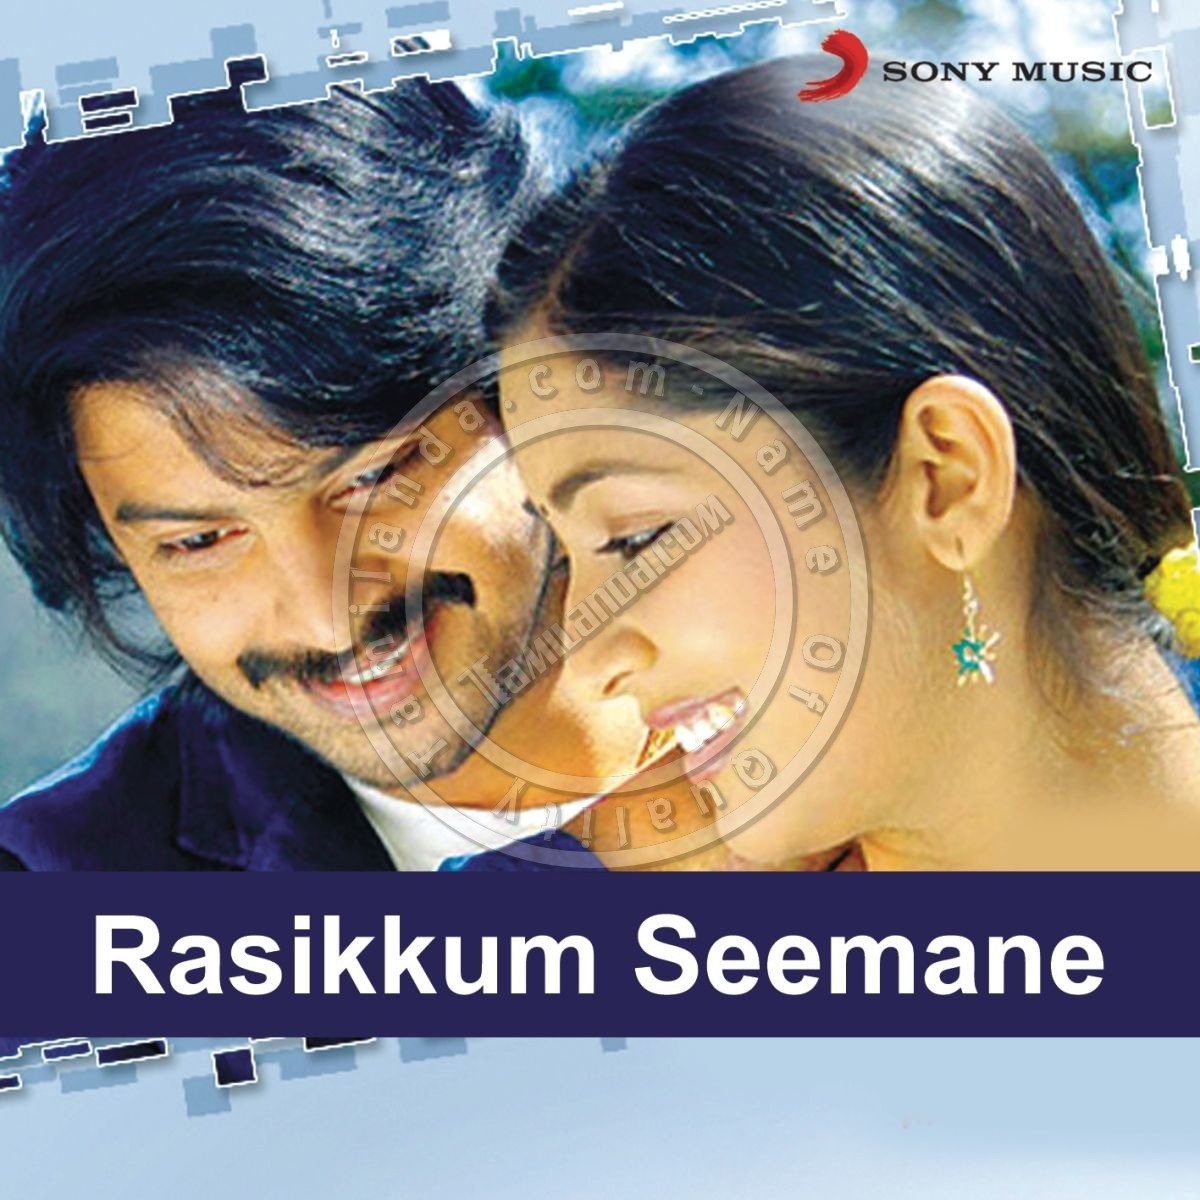 Rasikkum Seemane 16 BIT FLAC Songs